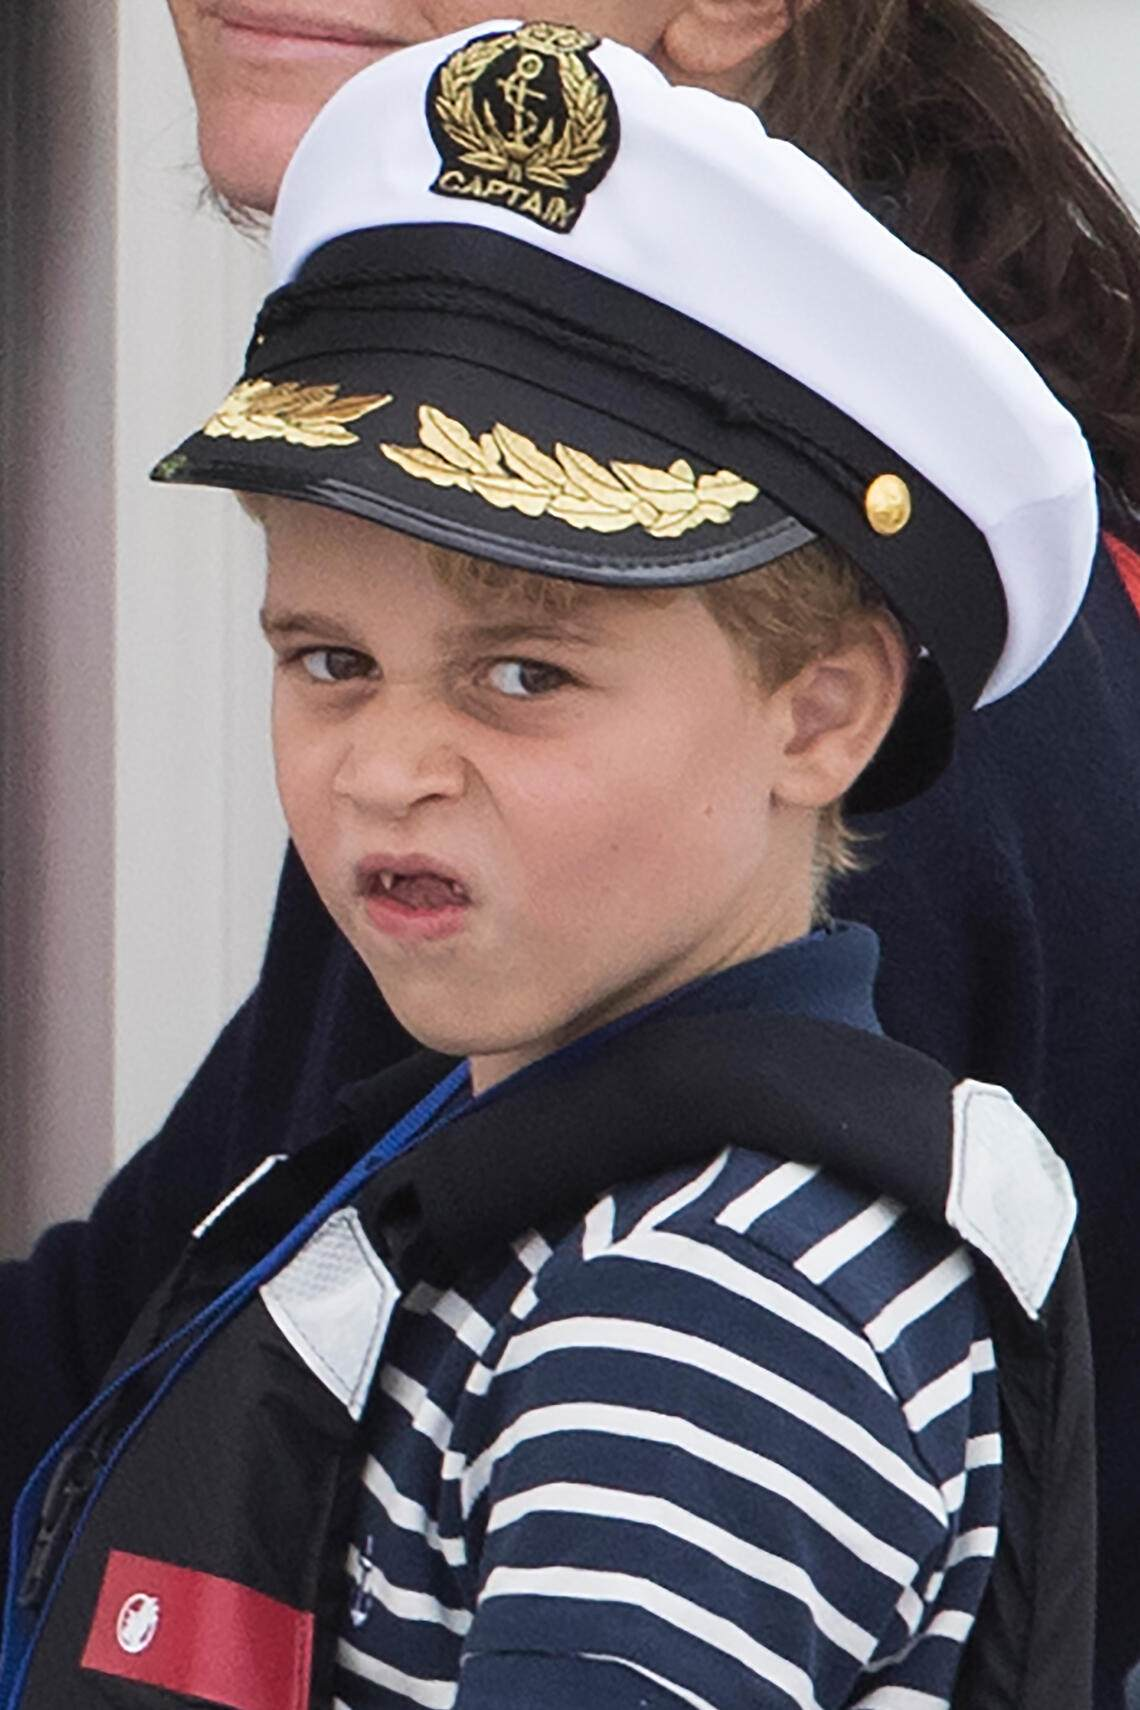 08/08/2019. Cowes, United Kingdom: Prince George watches the Duke and Duchess of Cambridge taking part in The King's Cup sailing regatta in Cowes, Isle of Wight, United Kingdom: (Stephen Lock / i-Images / Polaris) (FOTO:DUKAS/POLARIS)